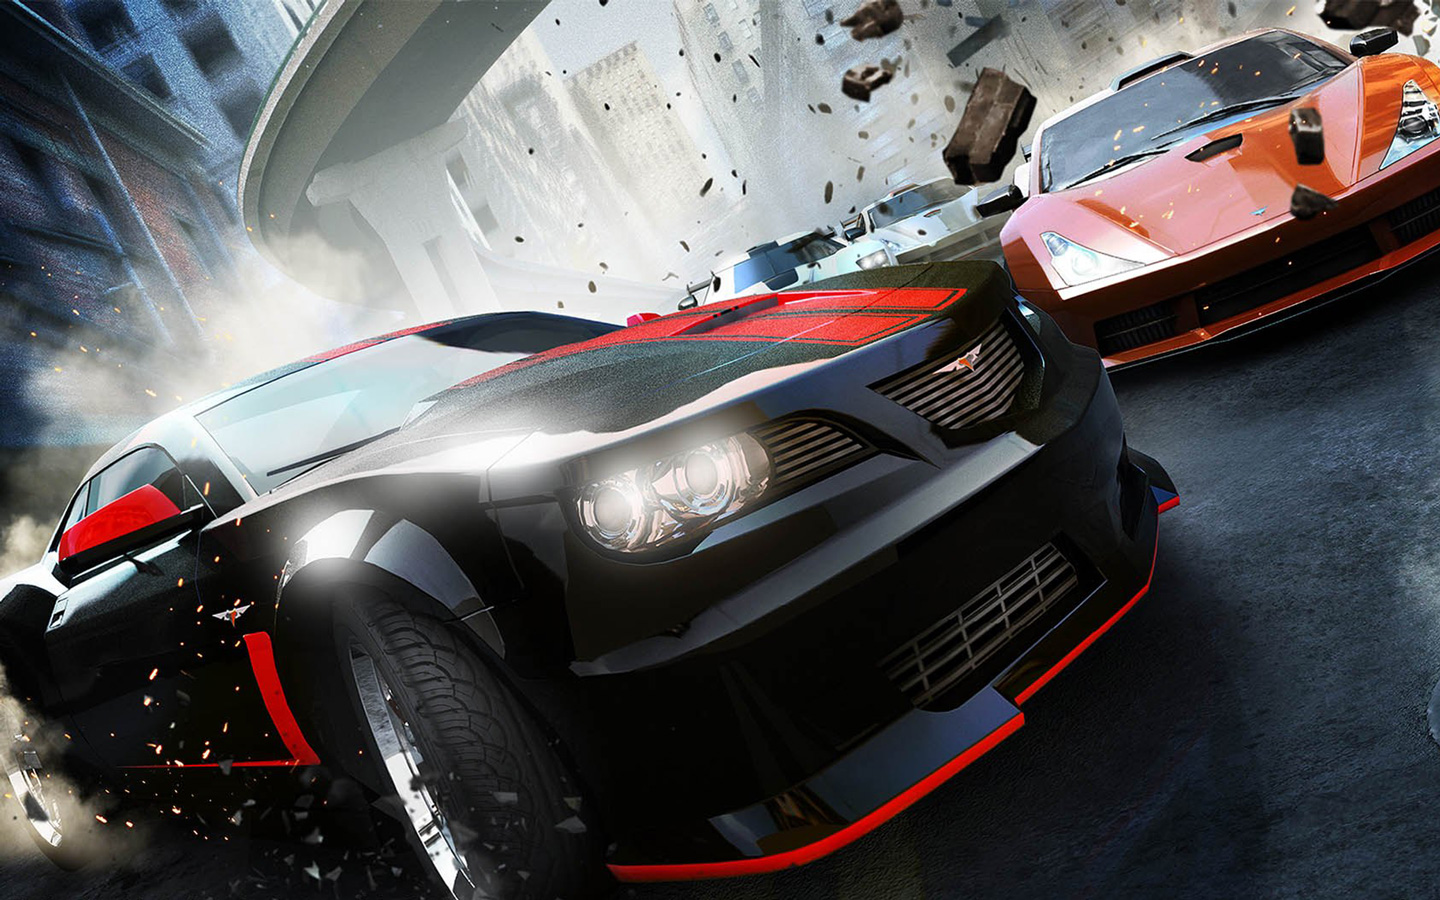 Free Ridge Racer Unbounded Wallpaper in 1440x900